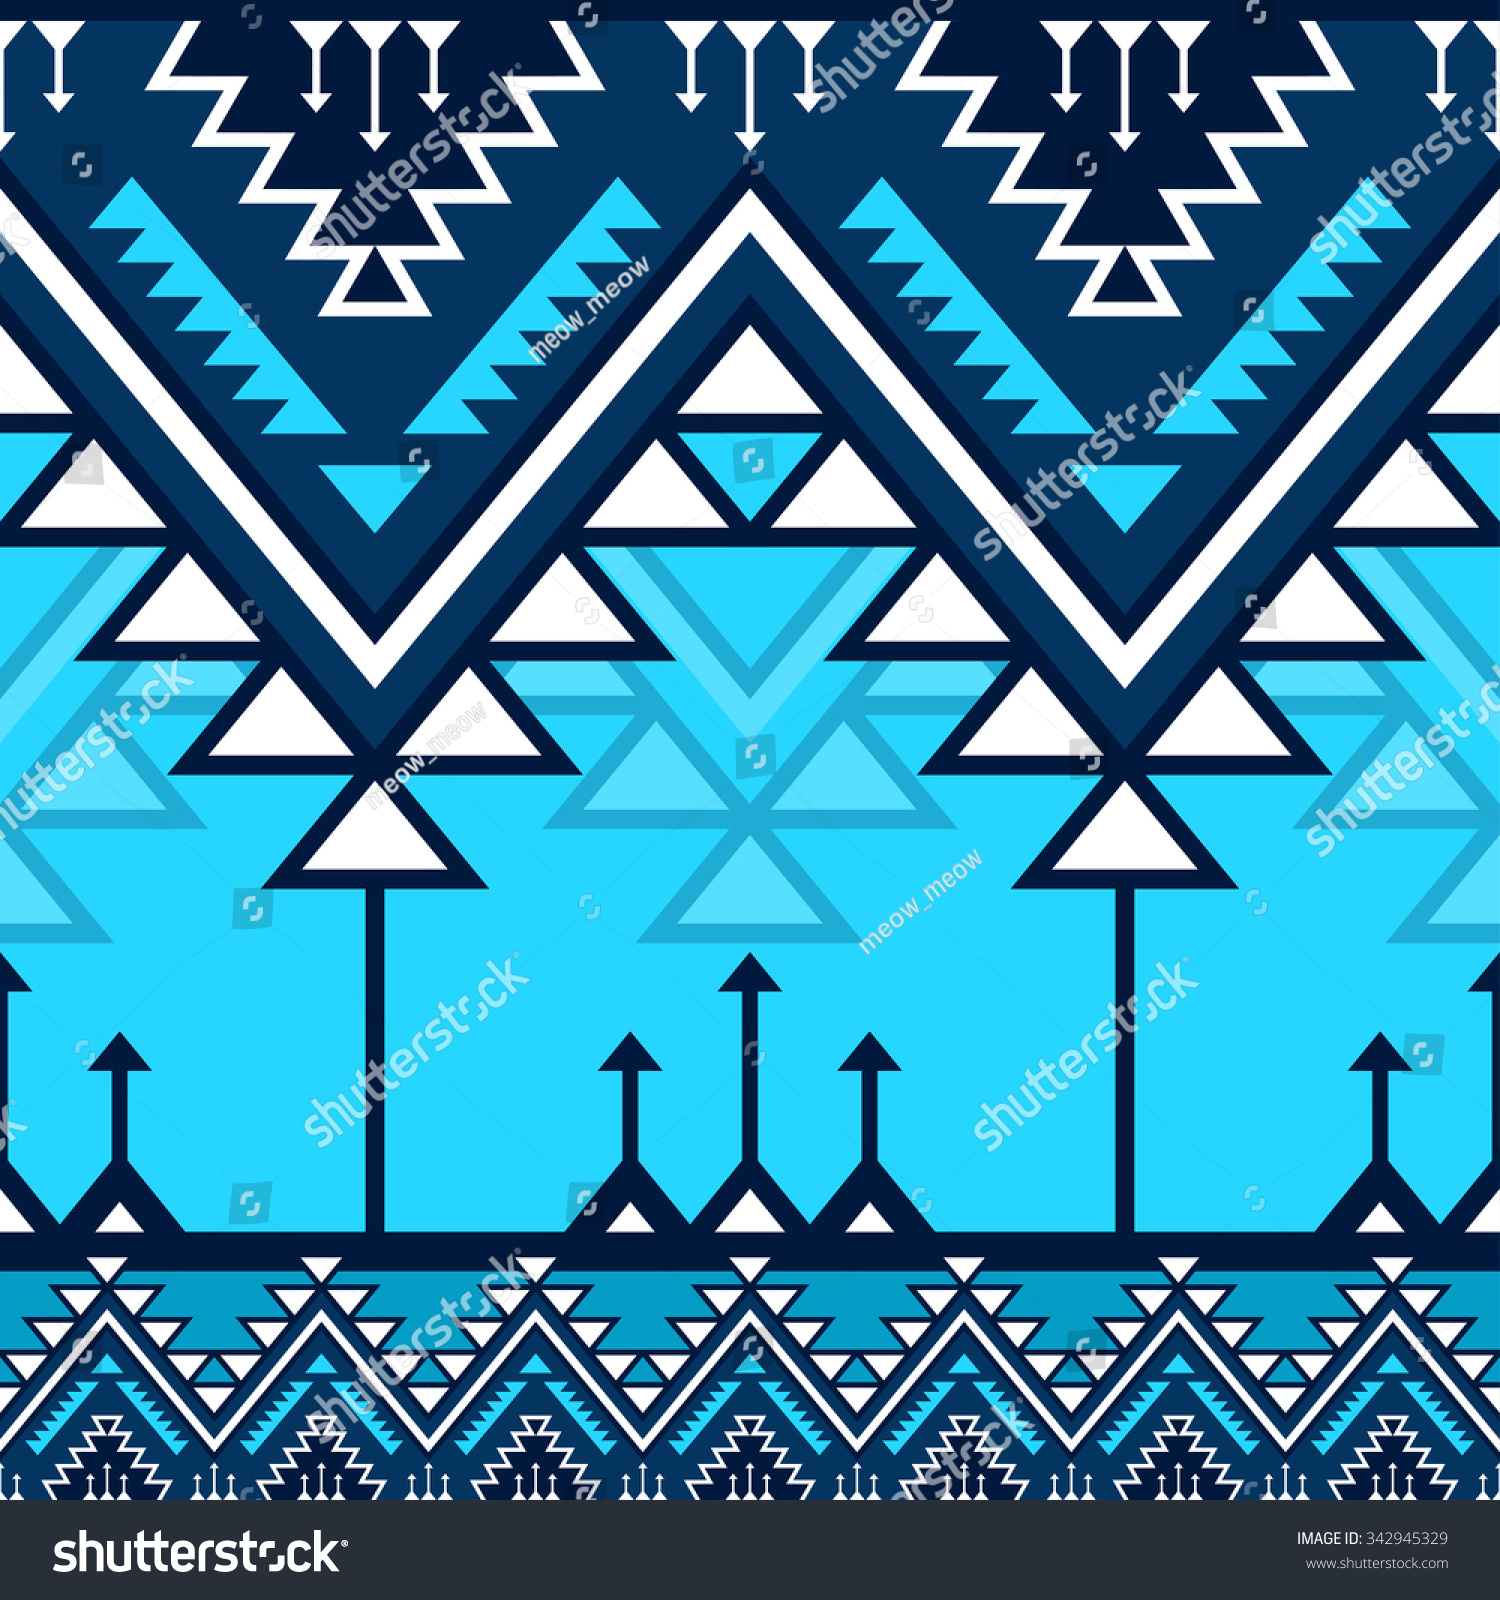 Blue Tribal Wallpapers: Blue Tribal Navajo Vector Seamless Pattern Stock Vector